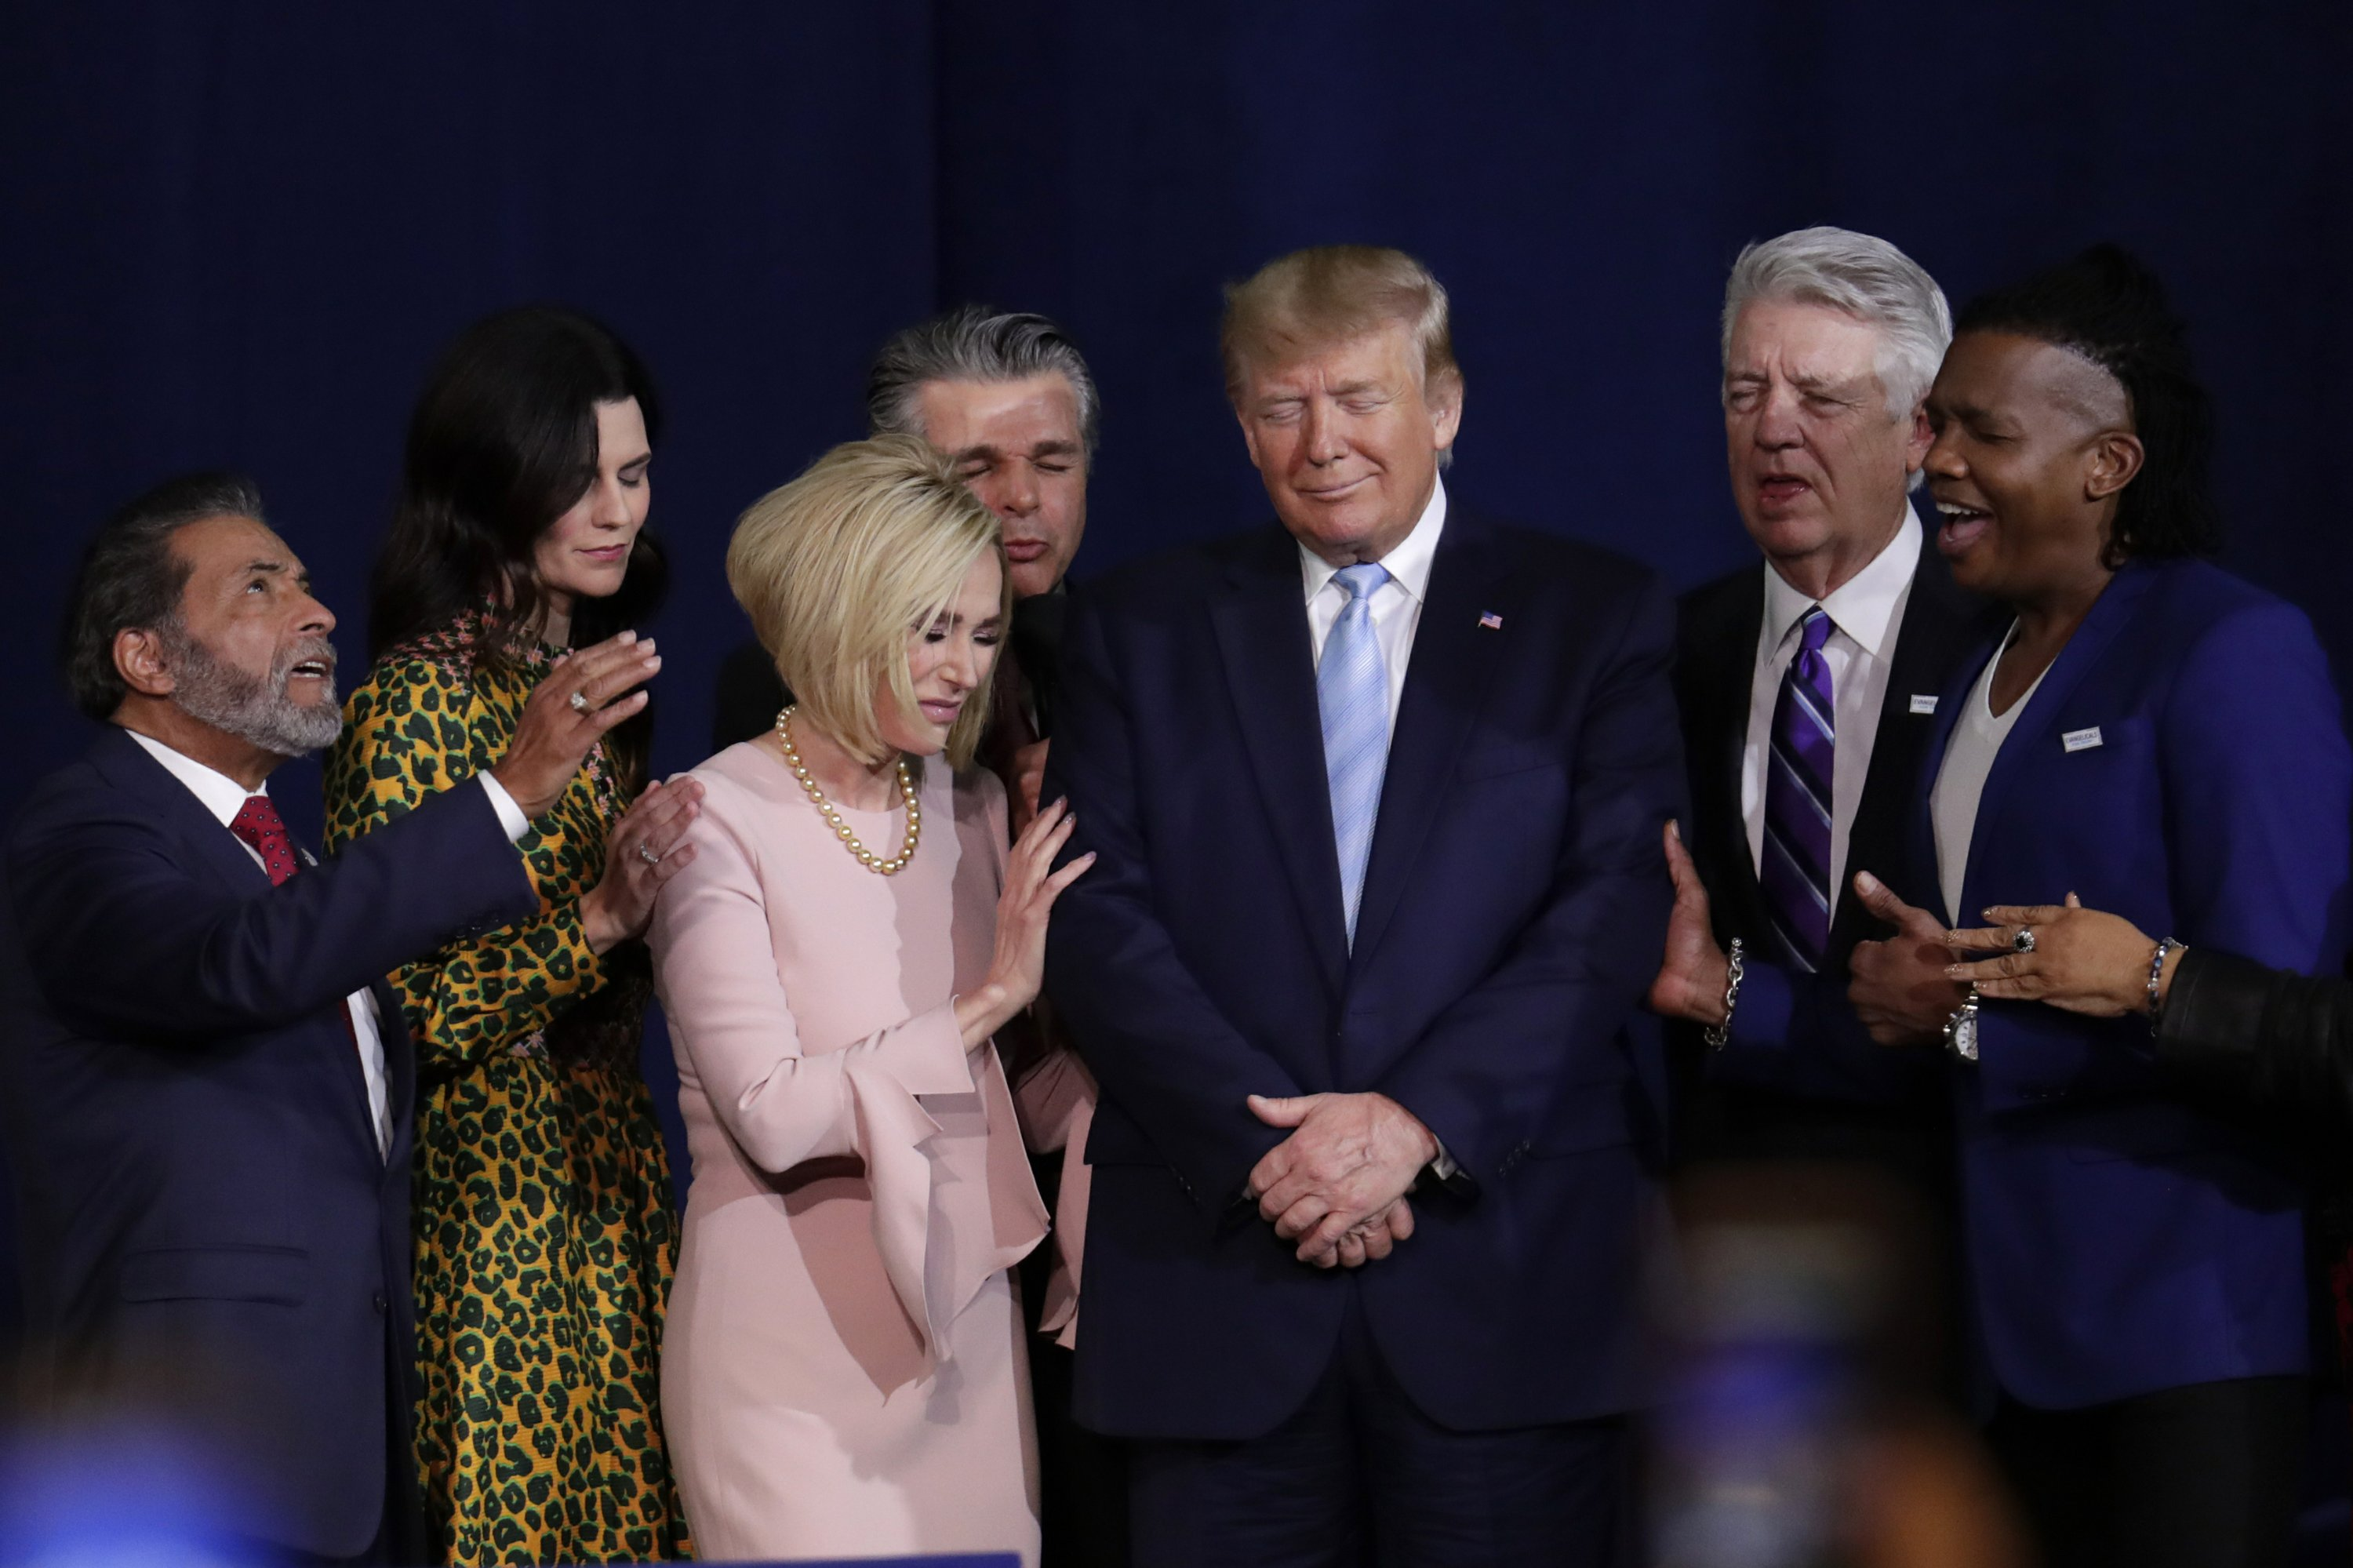 Evangelicals Who Stood by Trump in 2020 Election Still See Reasons to Celebrate Even If He Loses Re-election